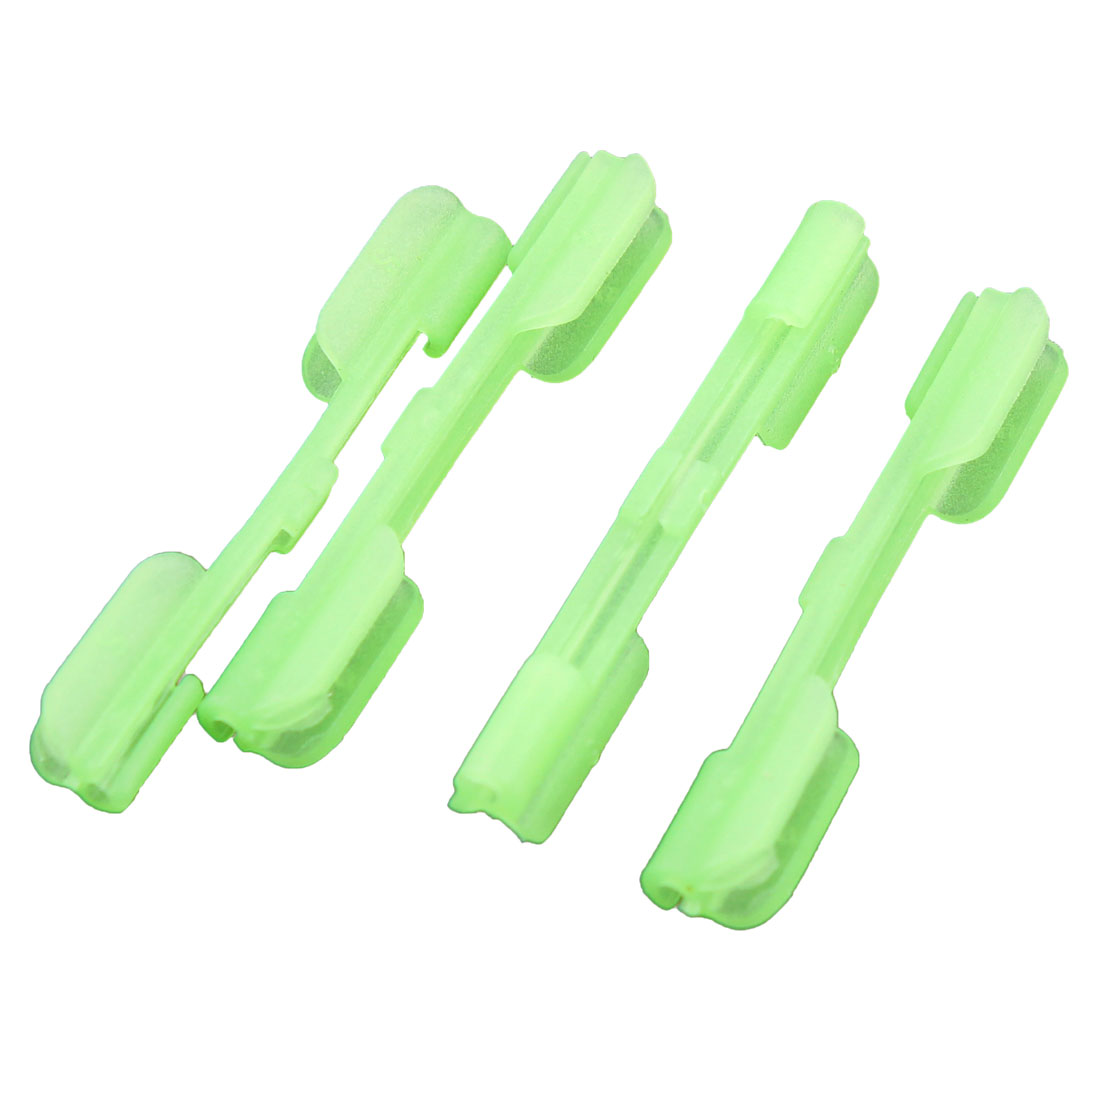 4PCS Fishing Tackle Light Green Plastic Luminous 2.5mm Inner Dia Sleeve Tubes